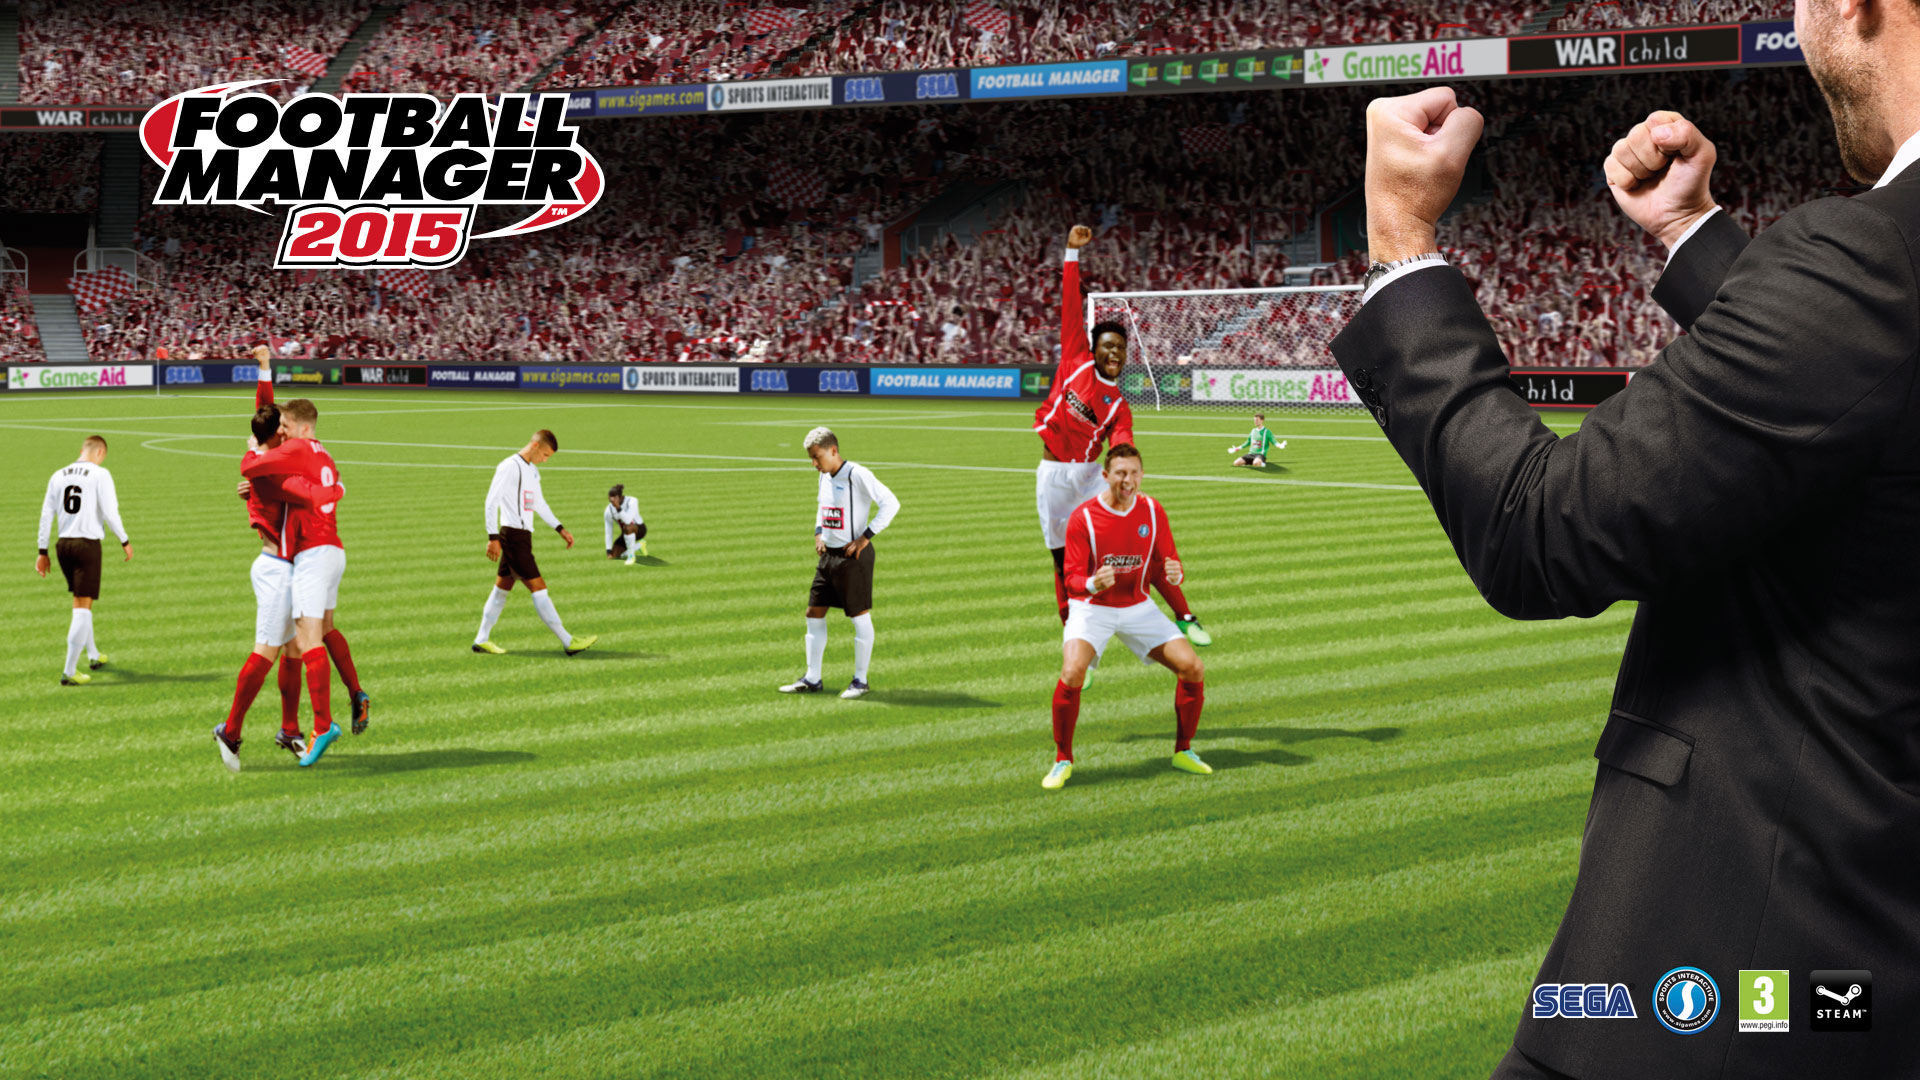 Football Manager Flash Banners